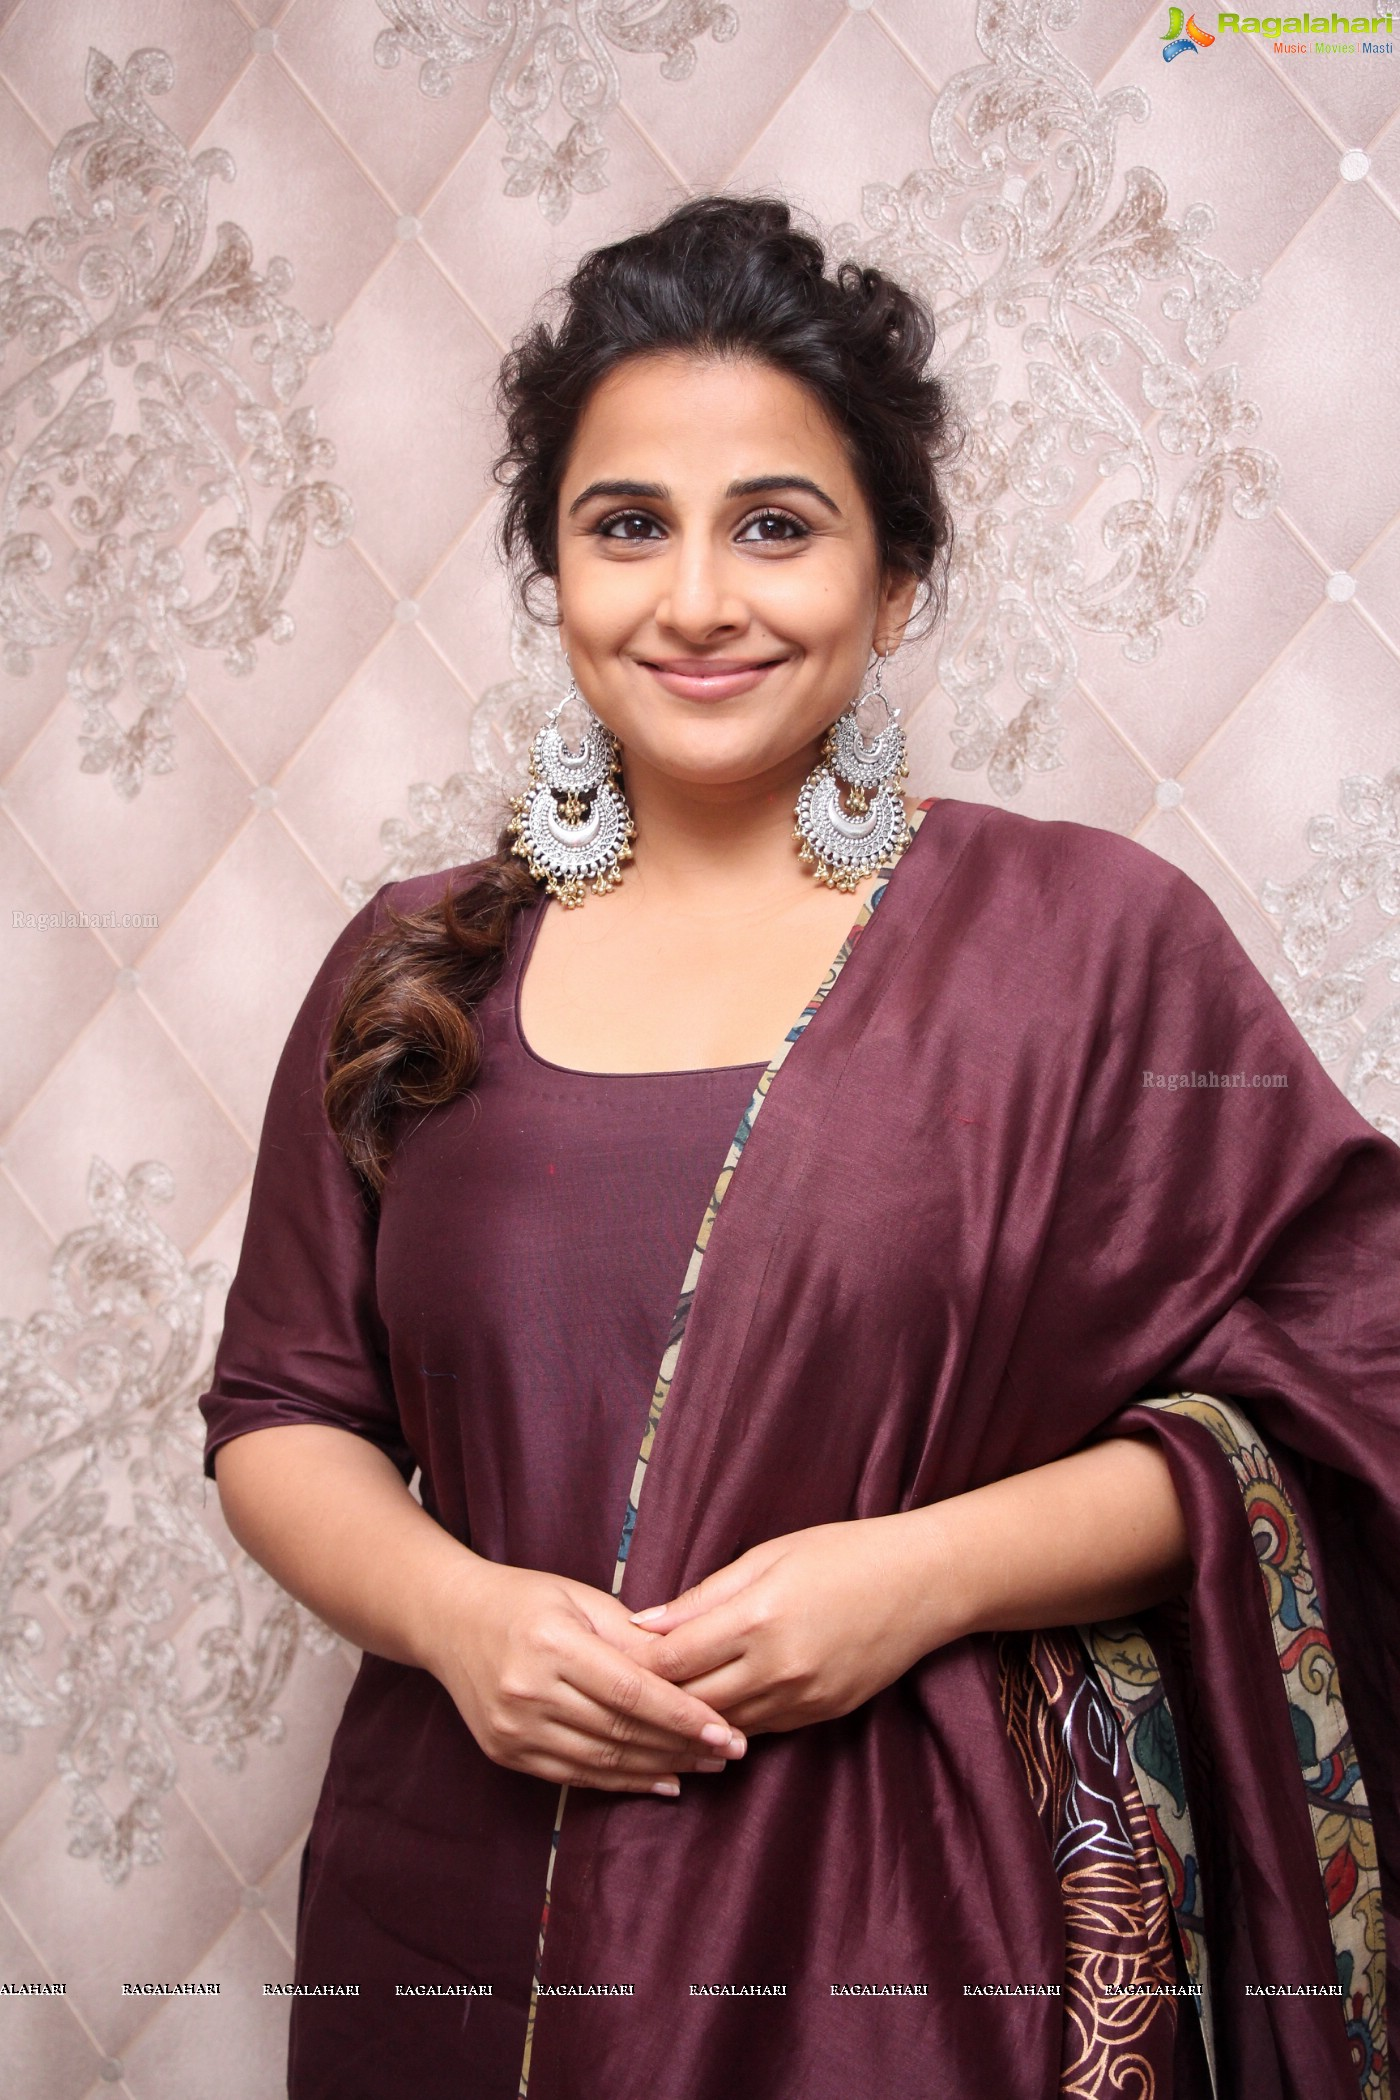 vidya balan (posters) image 9 | beautiful tollywood actress images